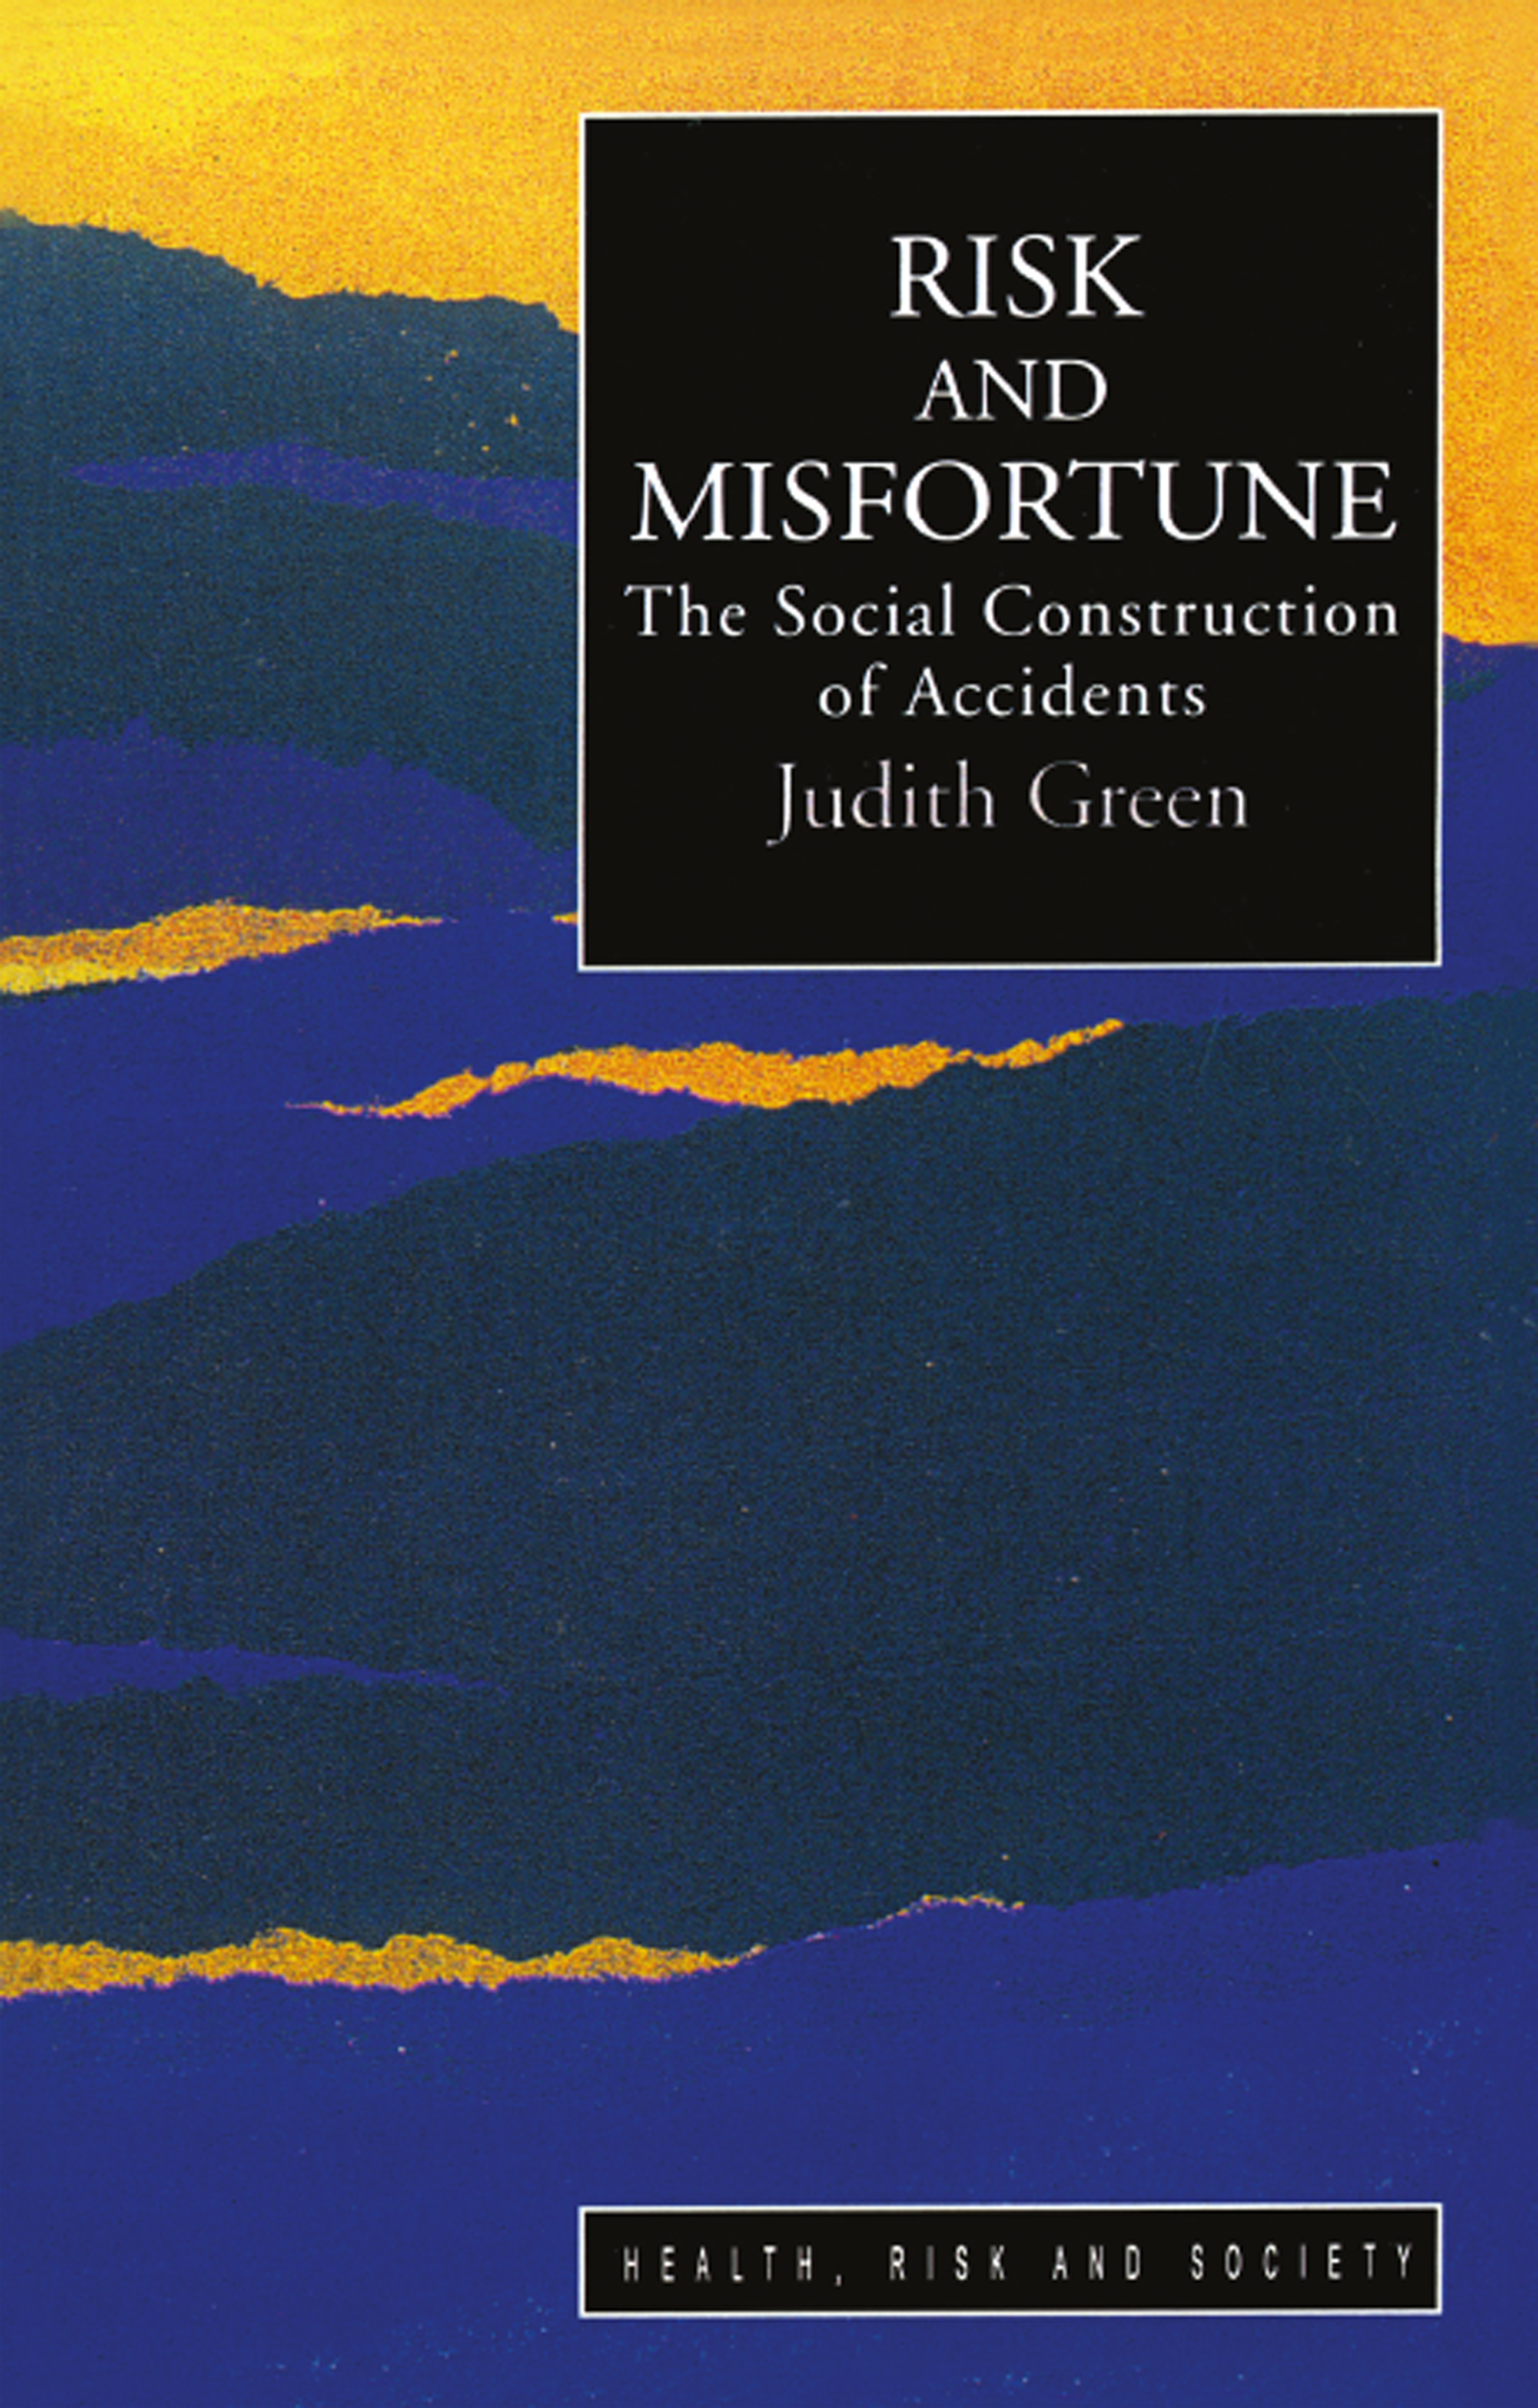 Accidents and social science